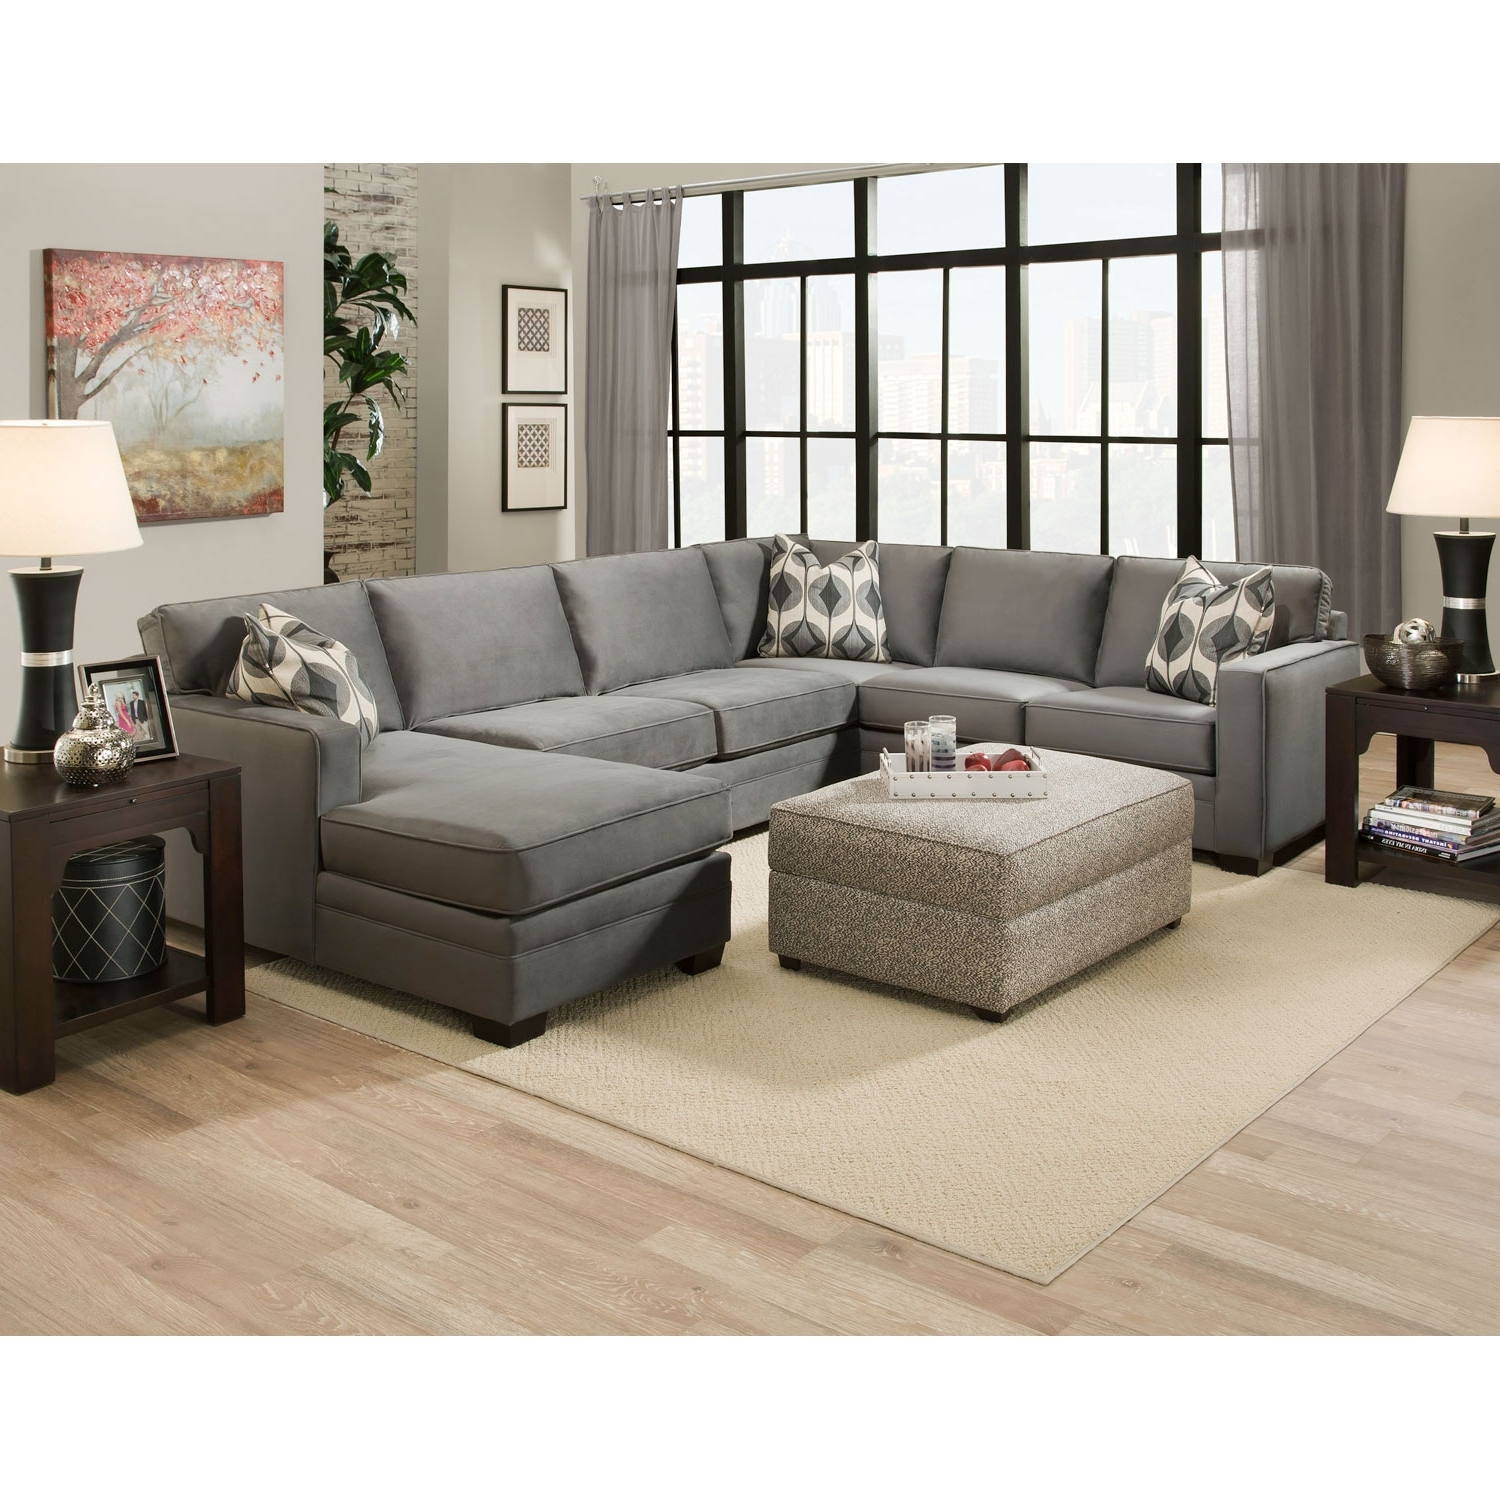 Gray U Shaped Sectionals Inside Recent Gray Extra Large U Shaped Sectional Sofa With Chaise And Accent (View 9 of 15)